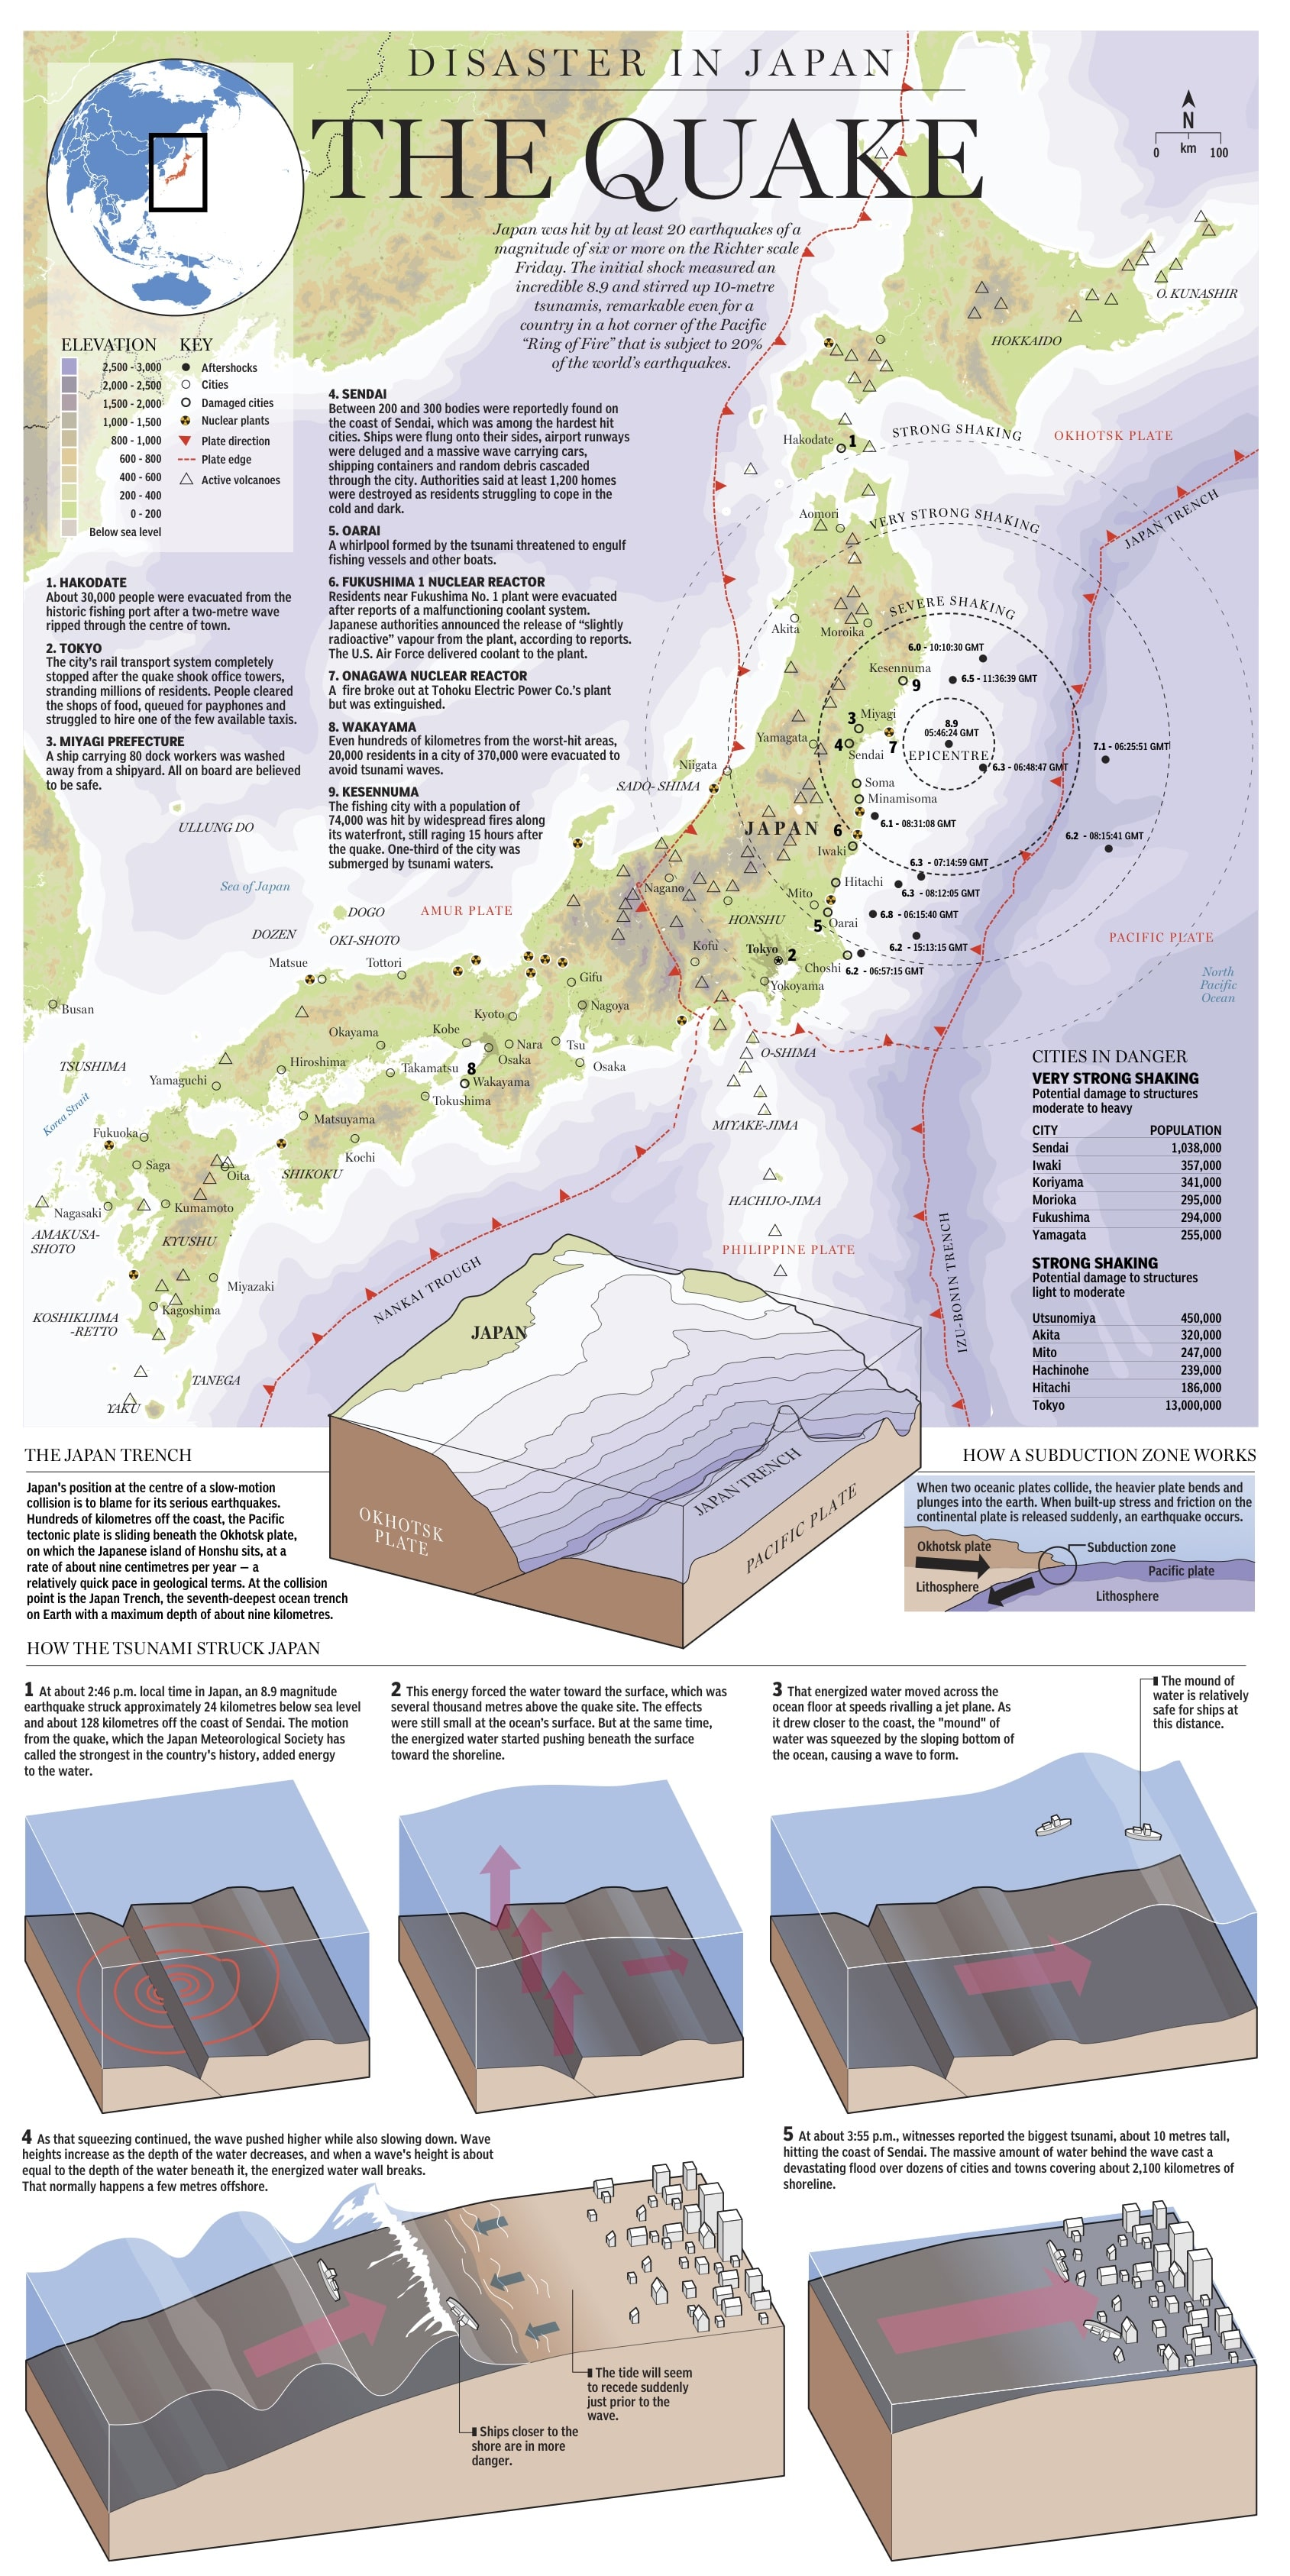 Infographic Concerning The Japan Earthquake